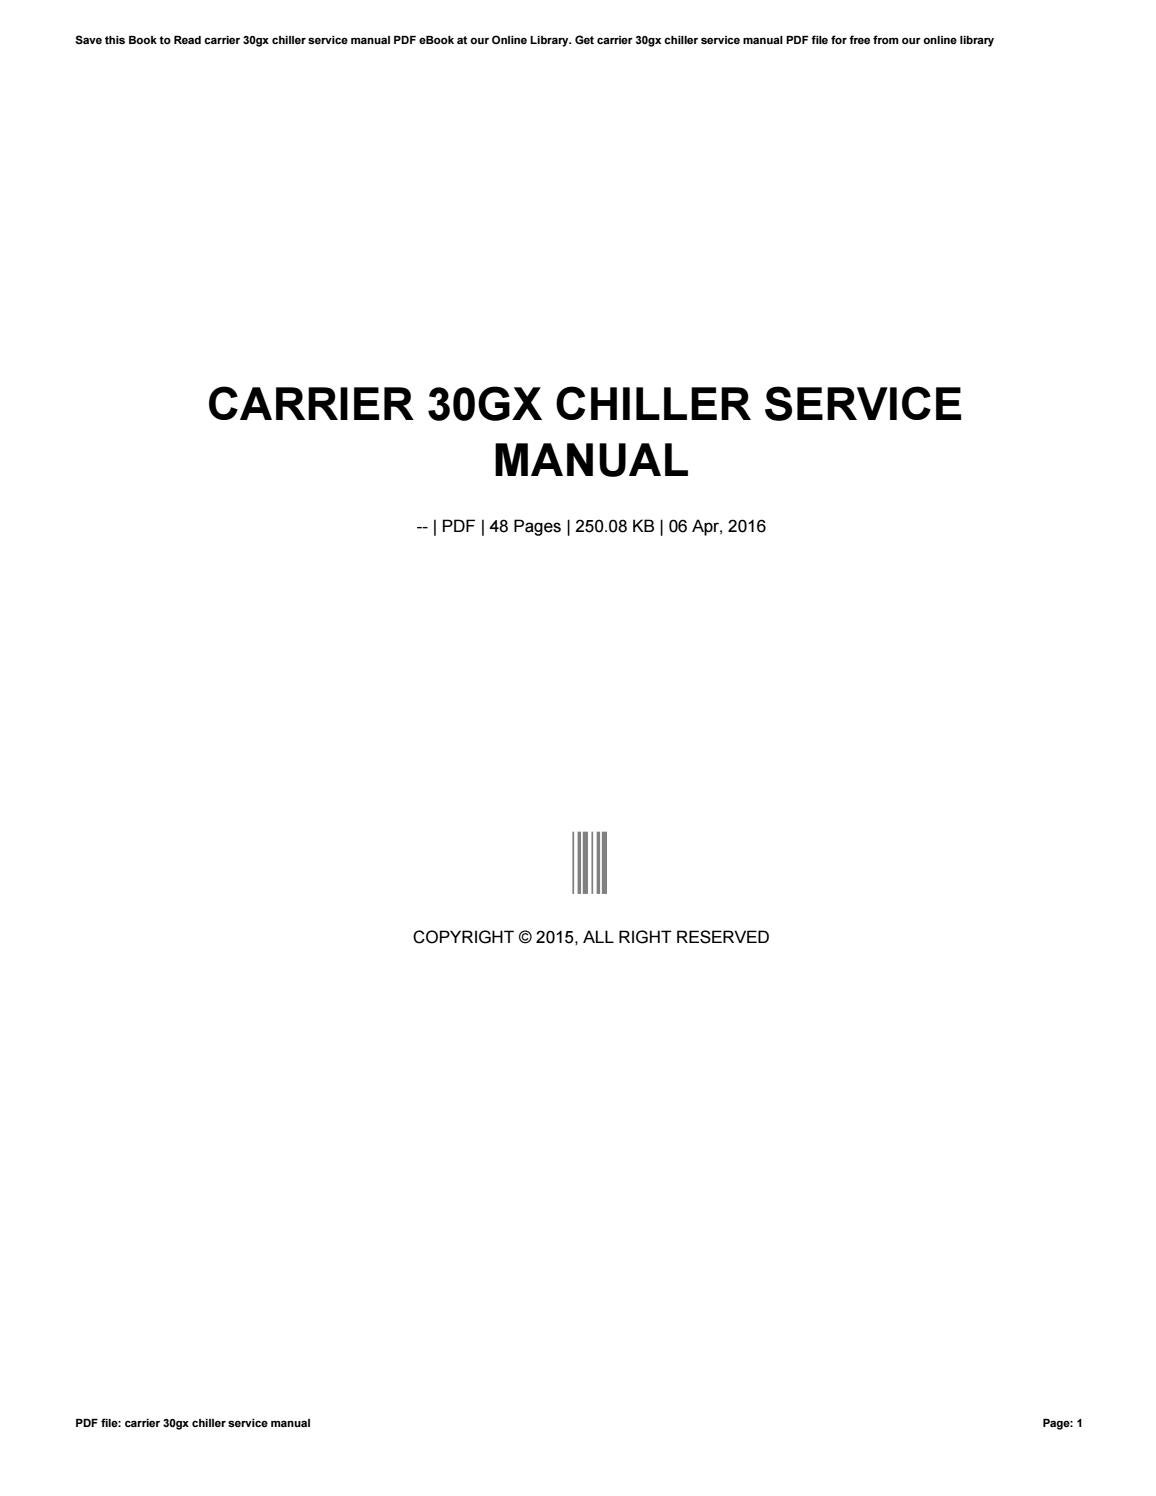 Carrier 30gx Chiller Service Manual By Maildx65